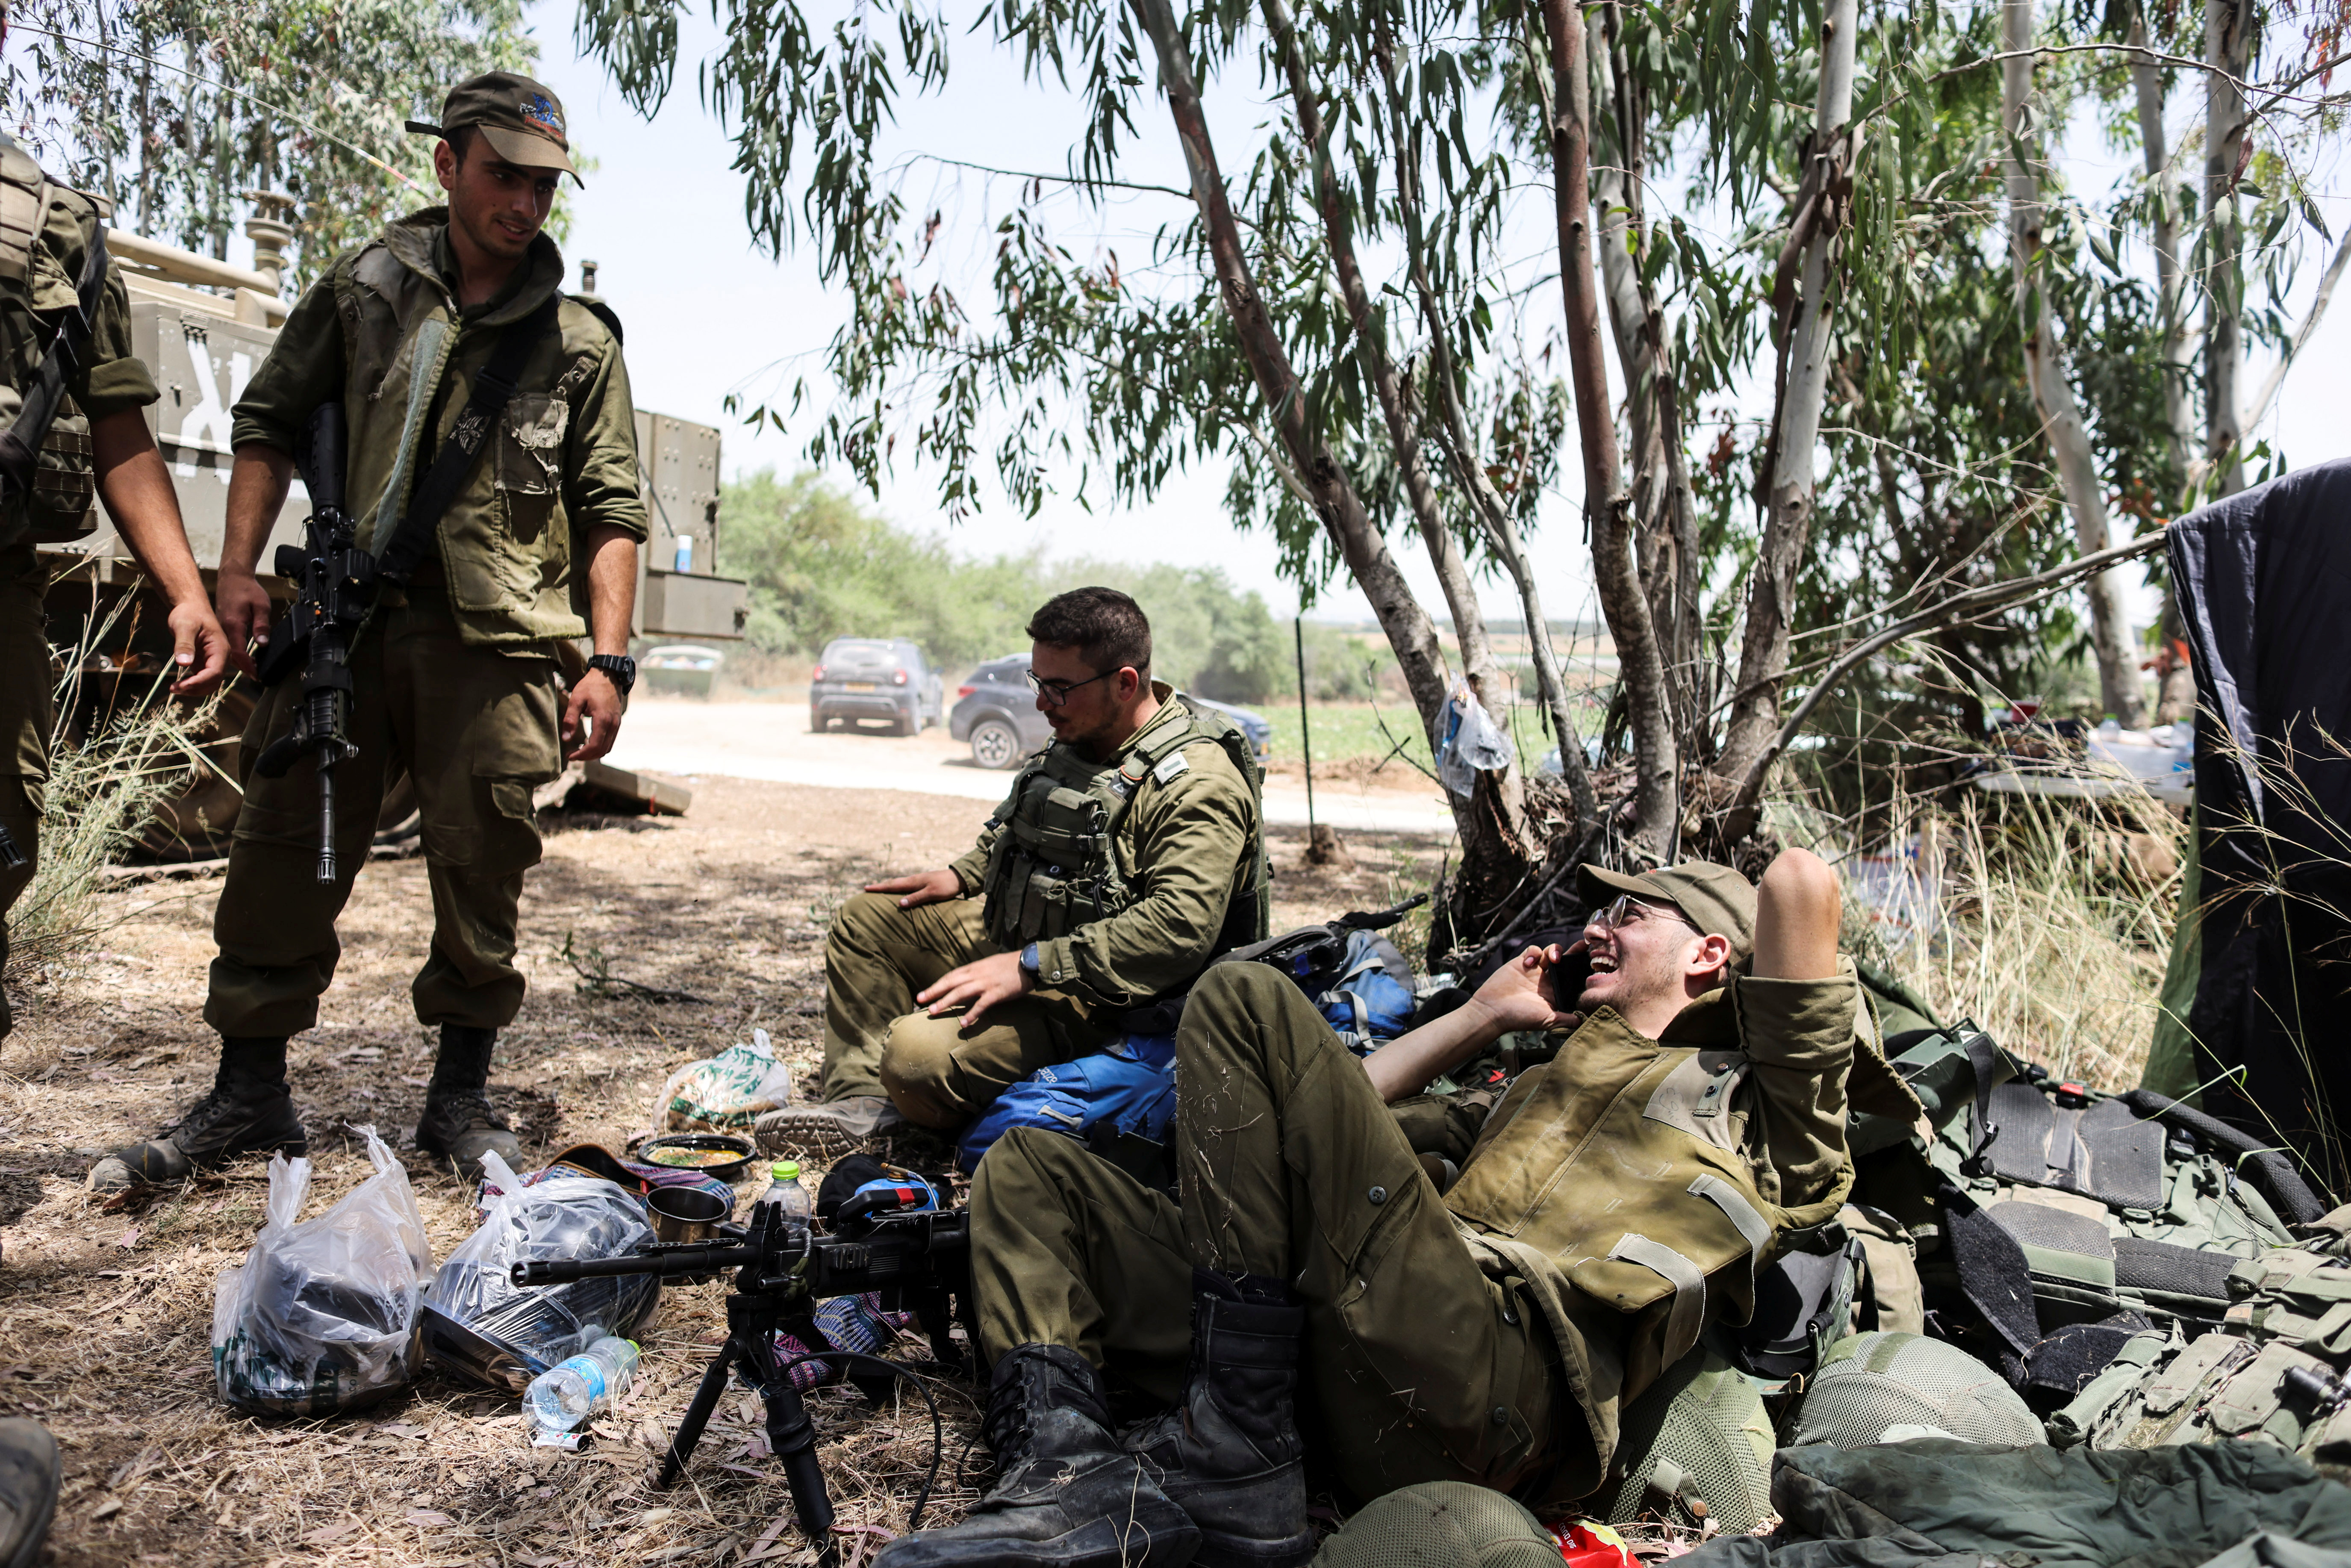 Israeli soldiers sit together in a field near the border between Israel and the Gaza Strip, on its Israeli side, following Israel-Hamas truce May 21, 2021. REUTERS/Ronen Zvulun